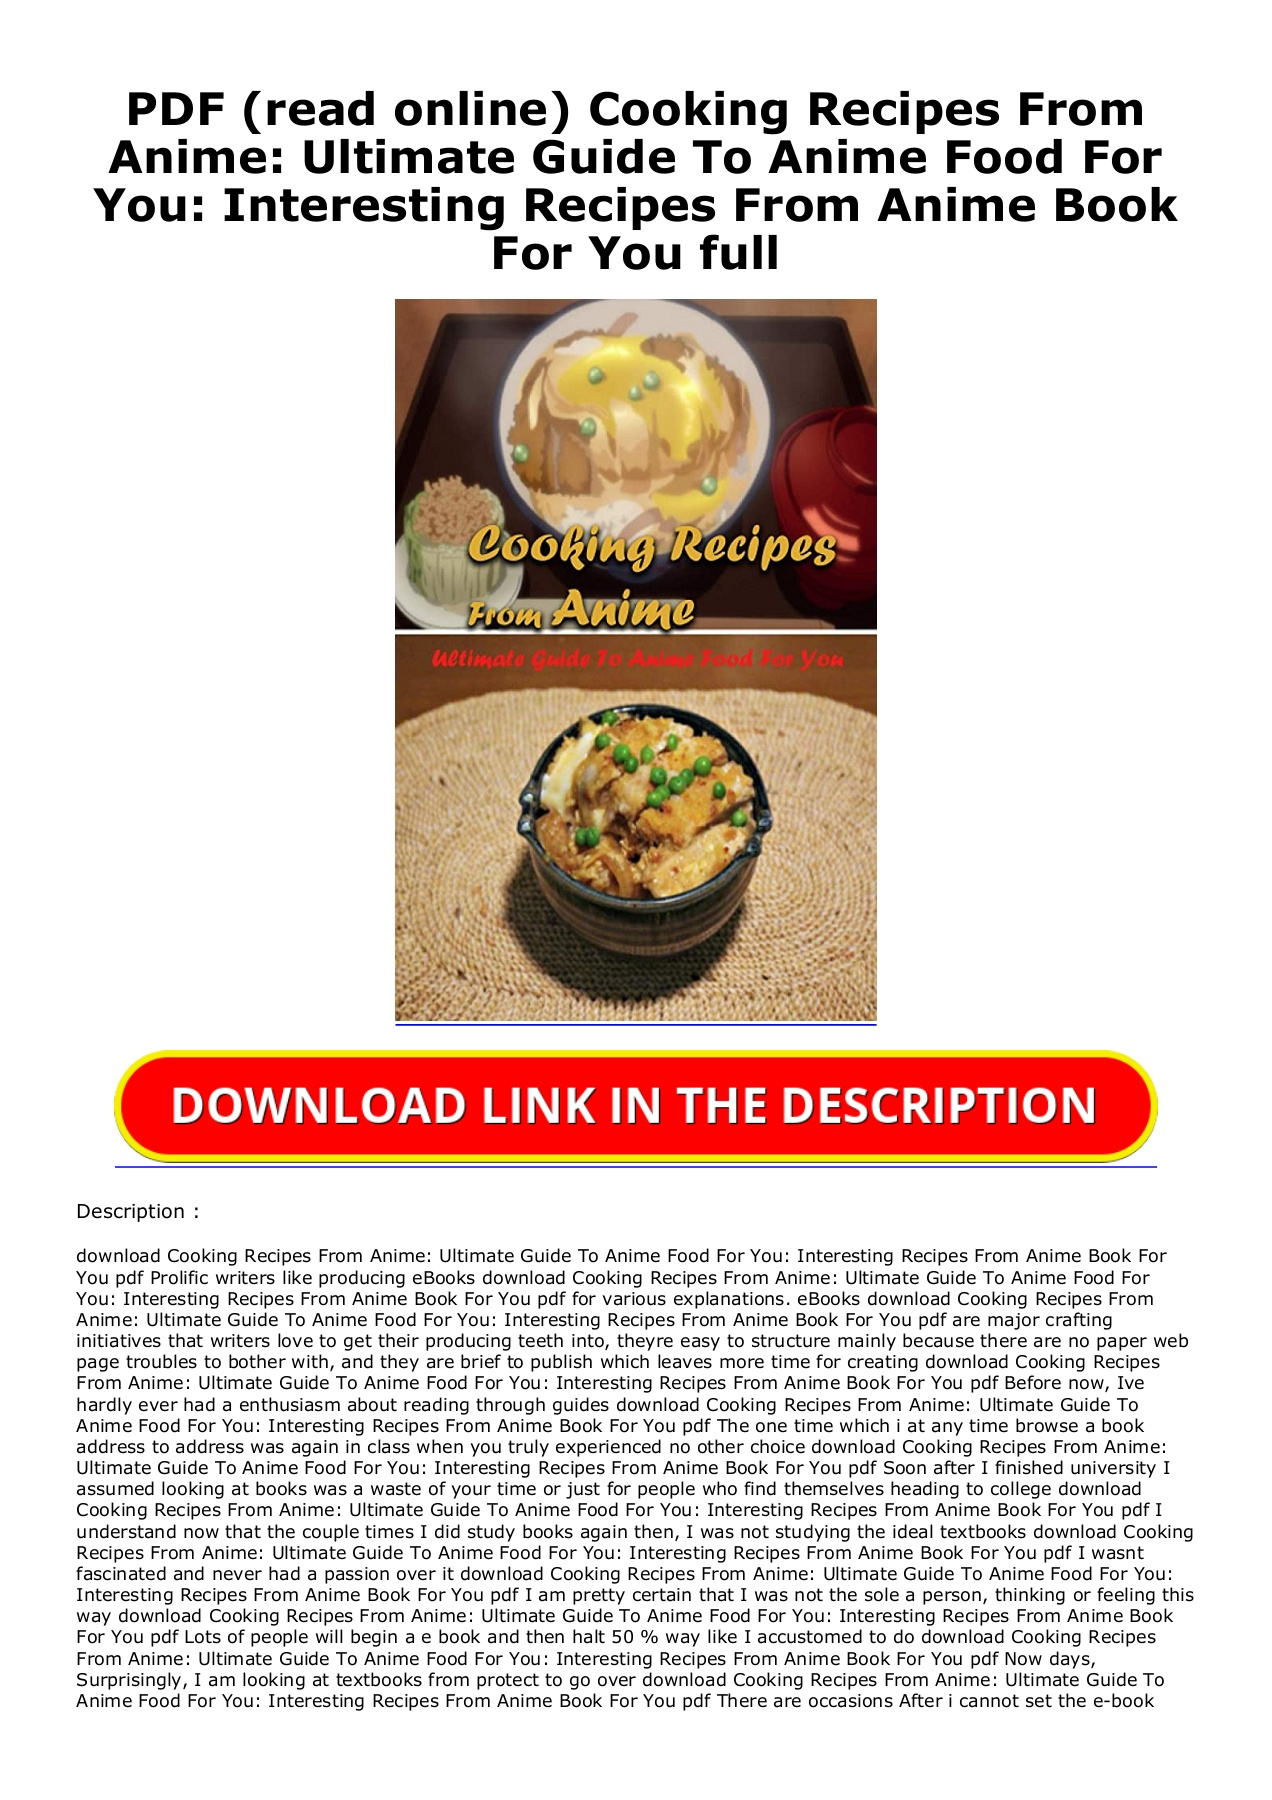 Pdf Read Online Cooking Recipes From Anime Ultimate Guide To Anime Food For You Interesting Recipes From Anime Book For You Full